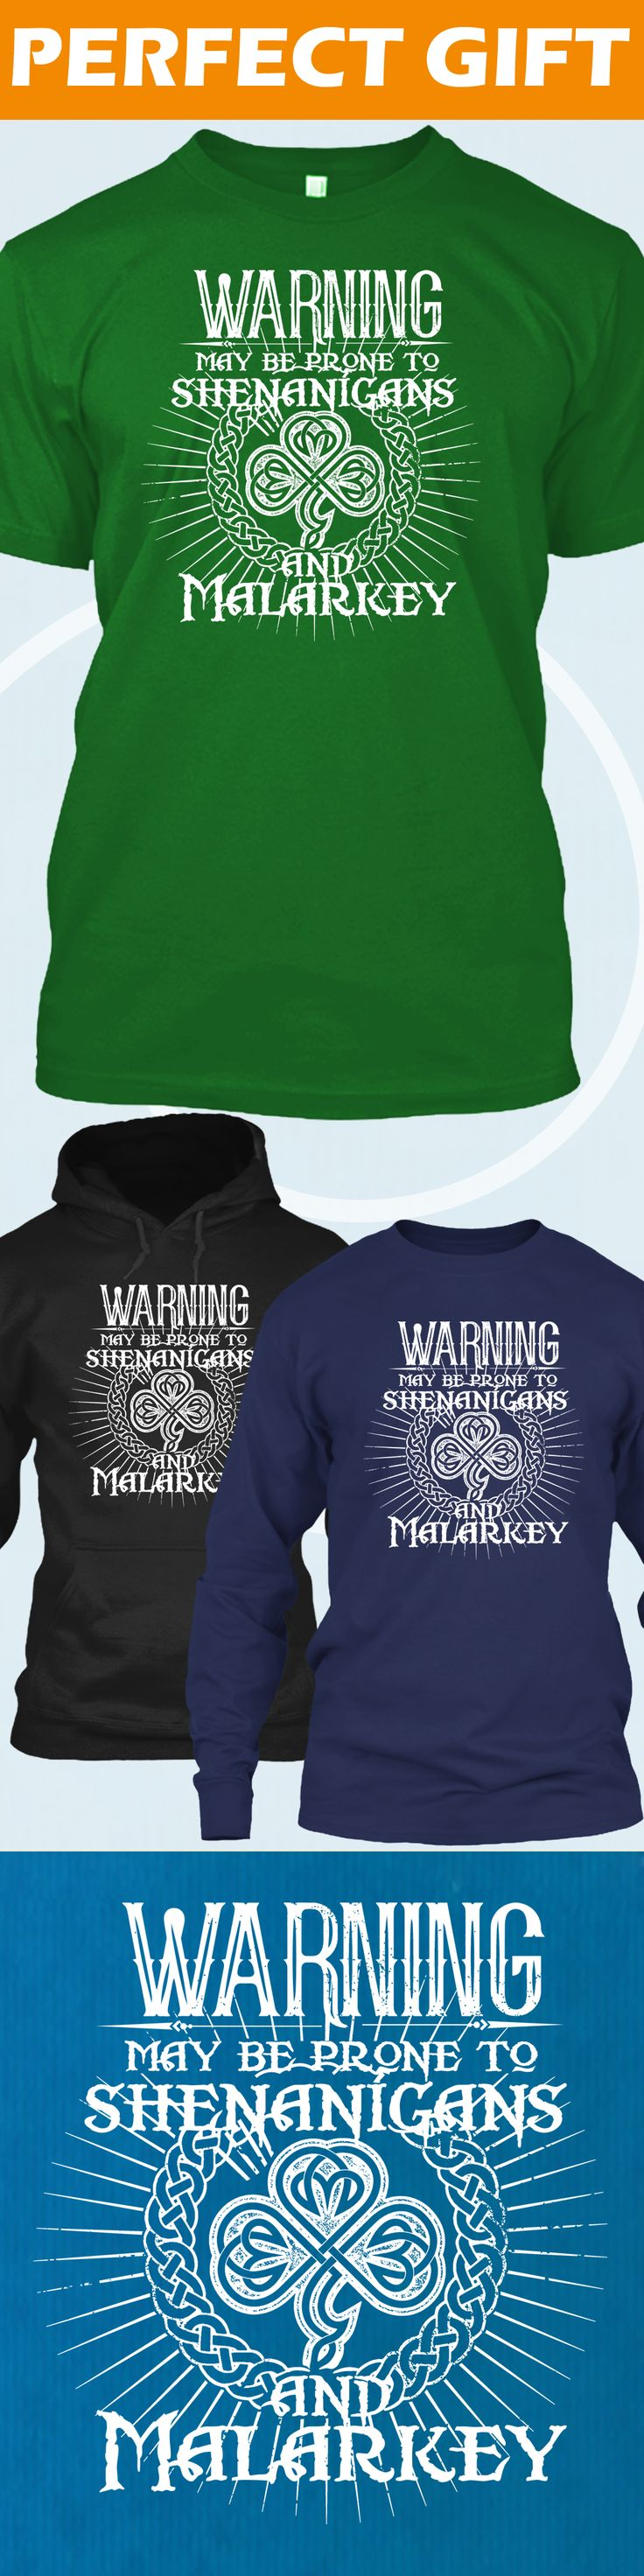 Shenanigans and Malarkey - Limited edition. Order 2 or more for friends/family & save on shipping! Makes a great gift!